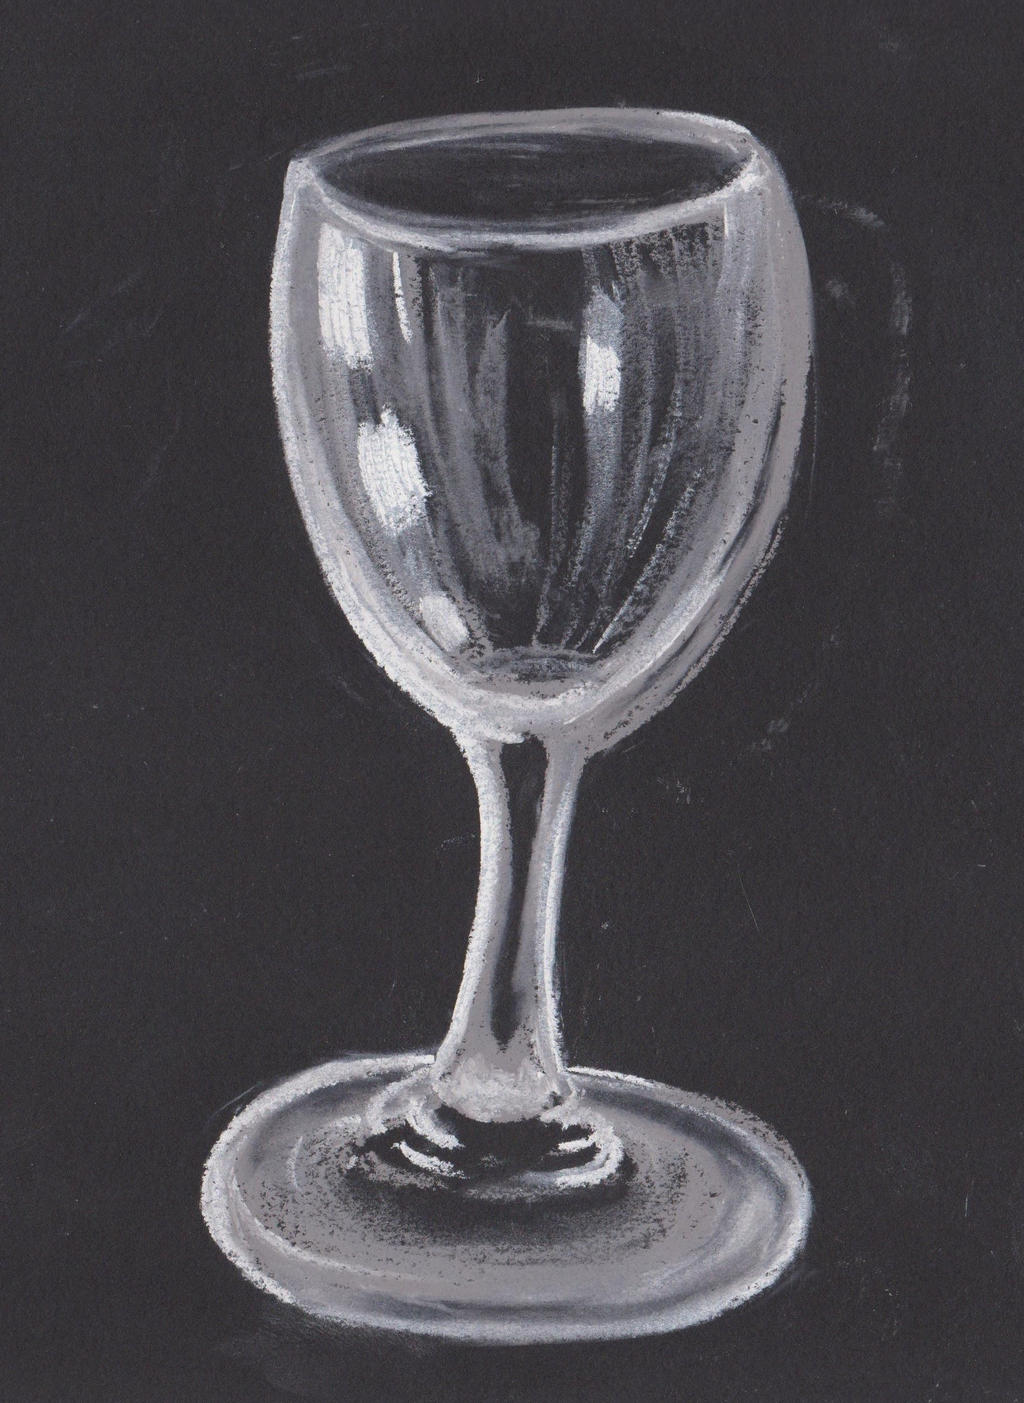 Still-life-2-wine-glass by JediPinkiePie